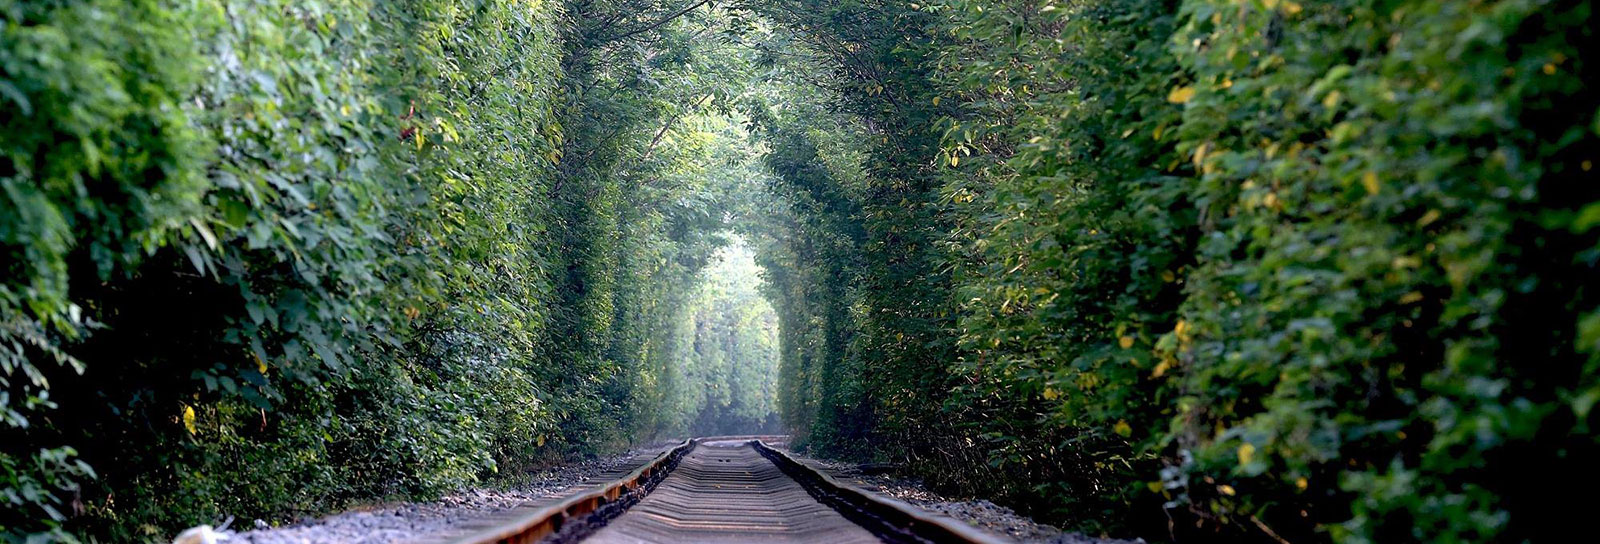 O verde e apaixonante 'túnel do amor' na China